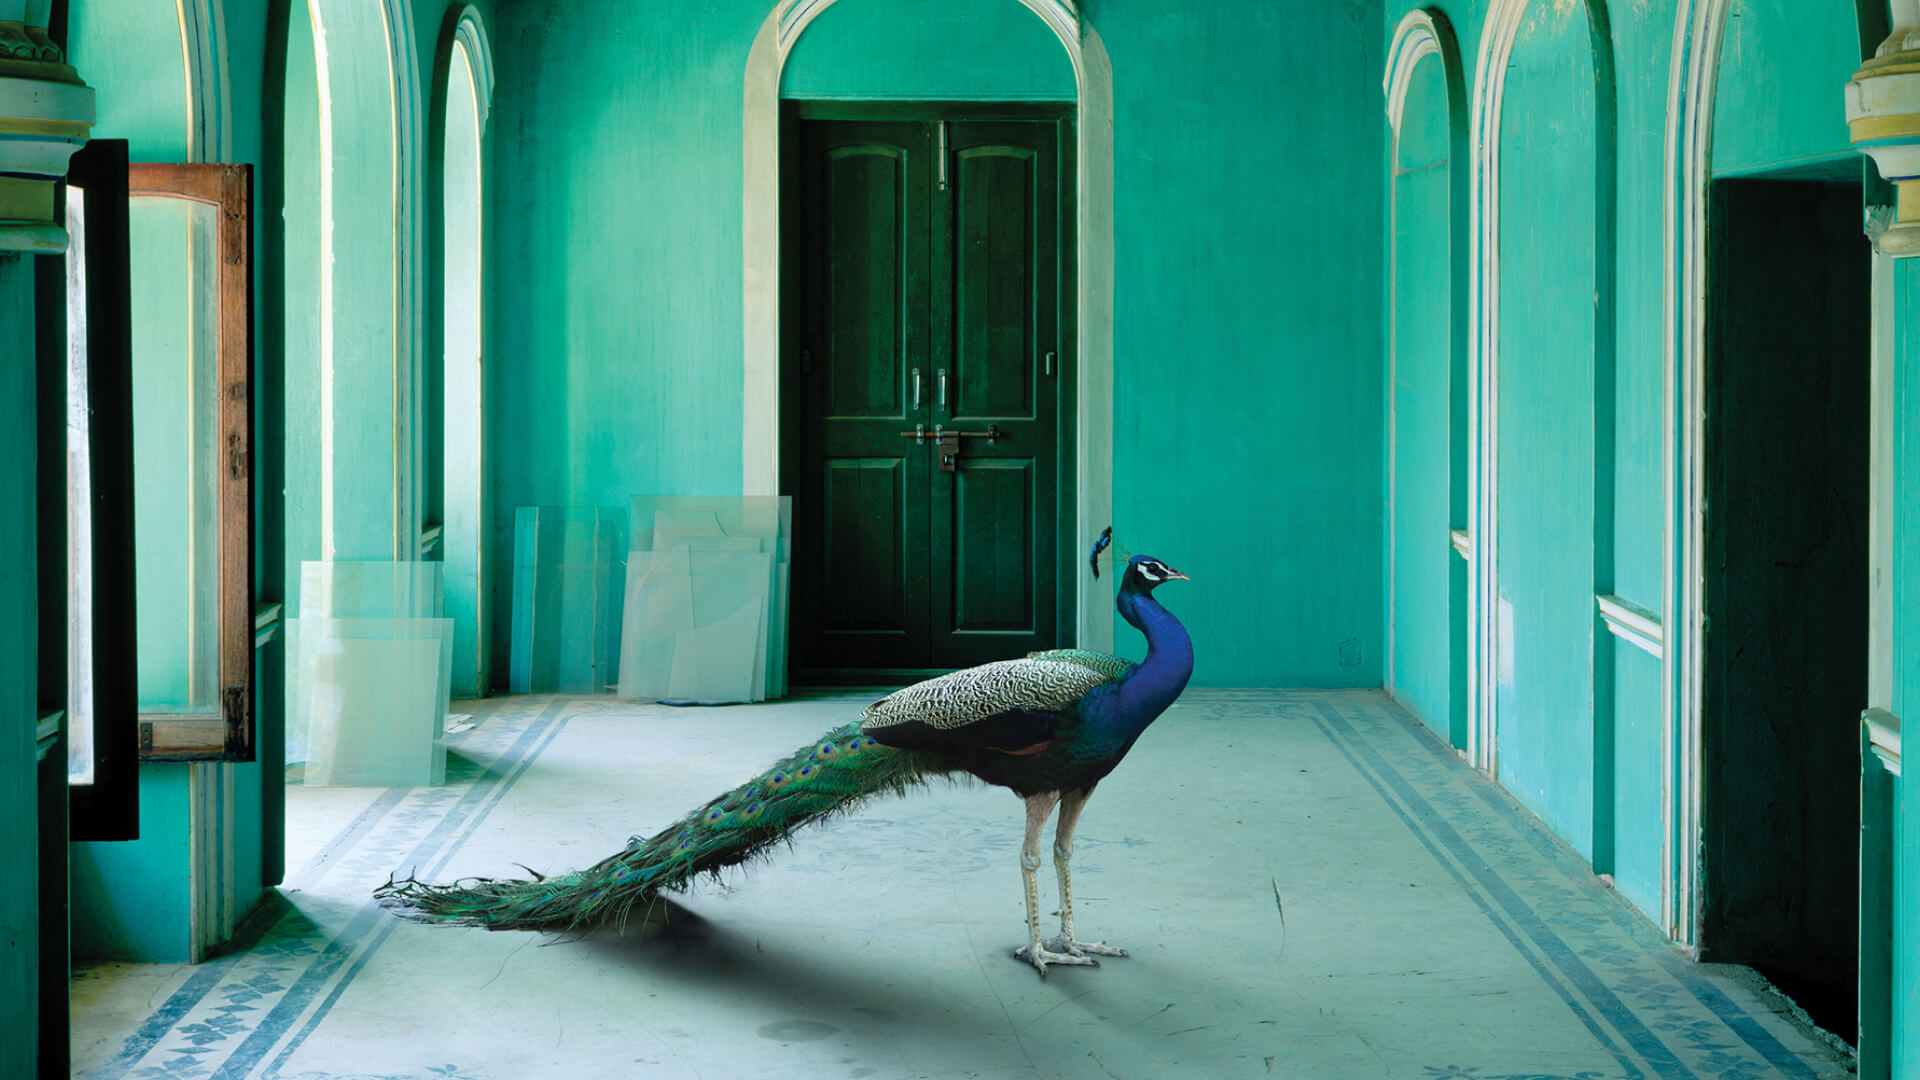 The Queen's Room, Zenana, Udaipur City Palace, India Song | Karen Knorr | STIRWorld